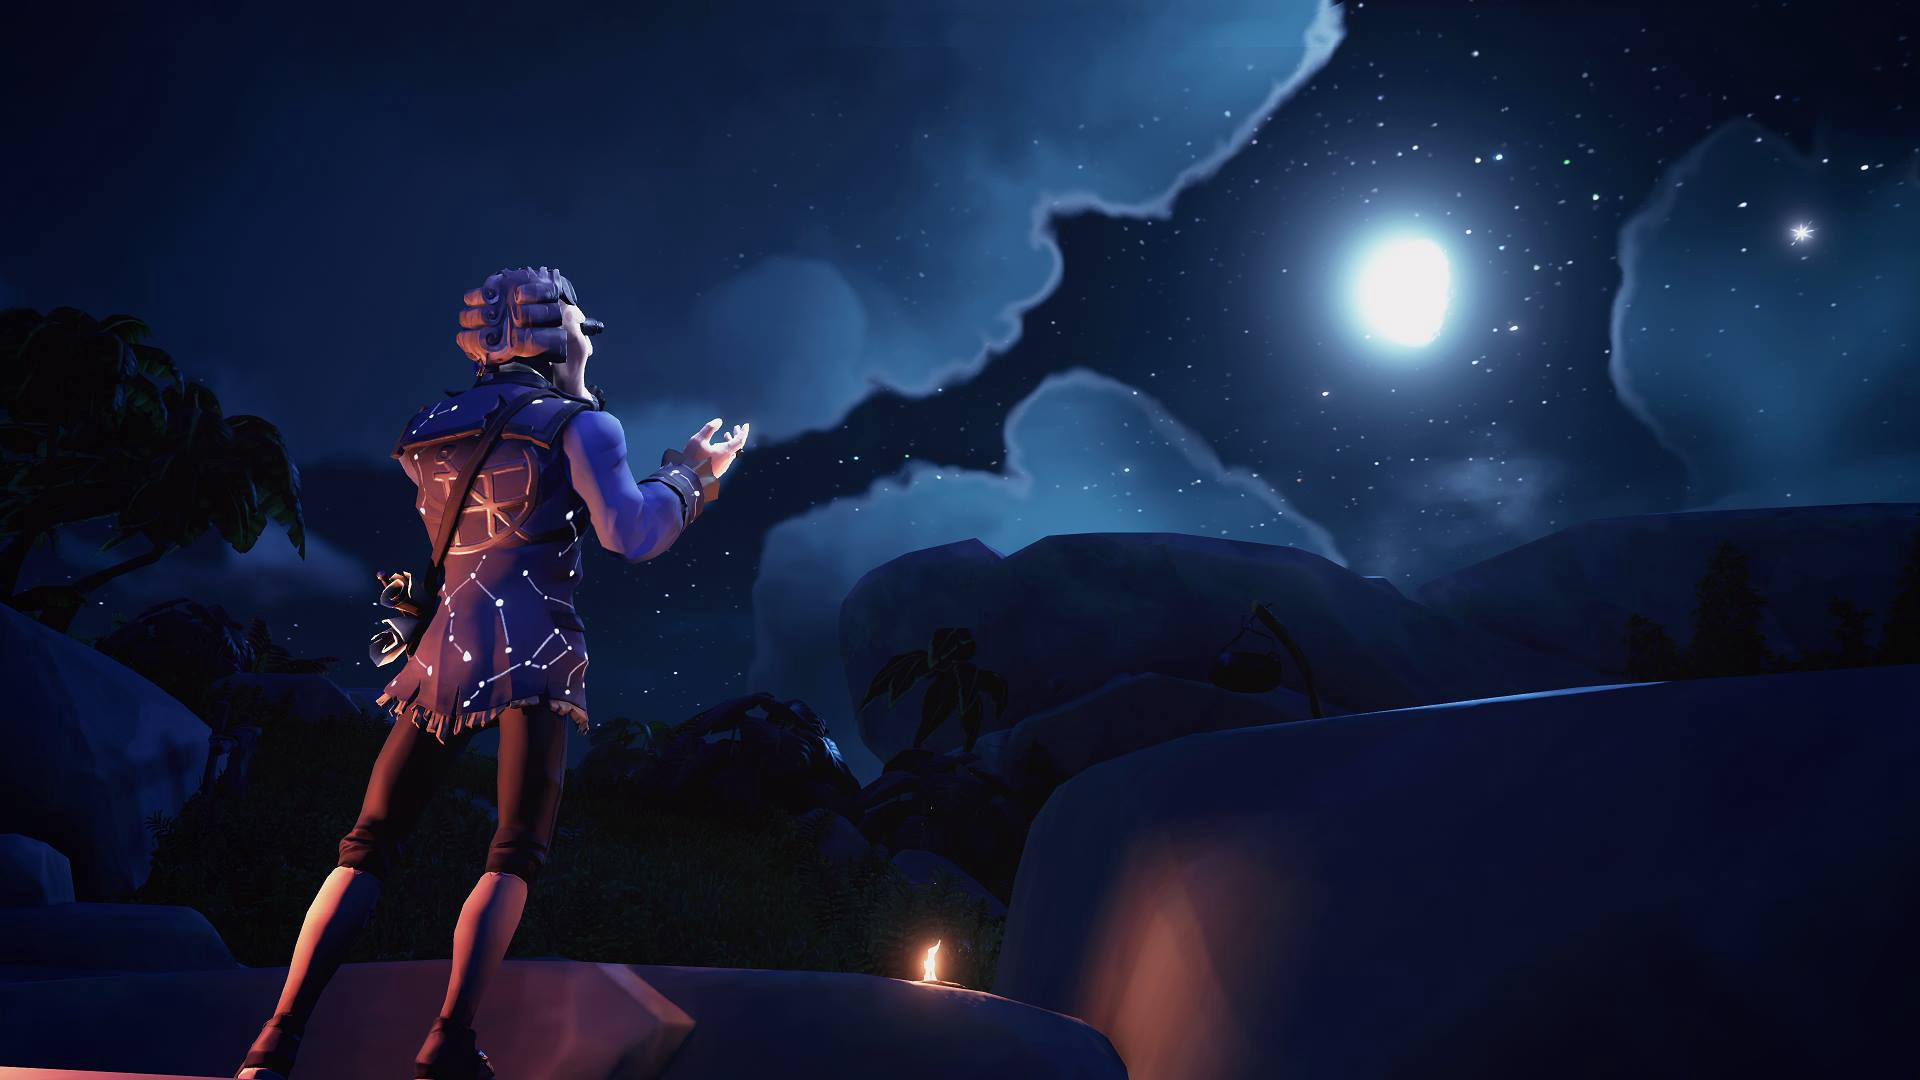 Sea of Thieves Tall Tales: Shores of Gold — #4 Stars of a Thief